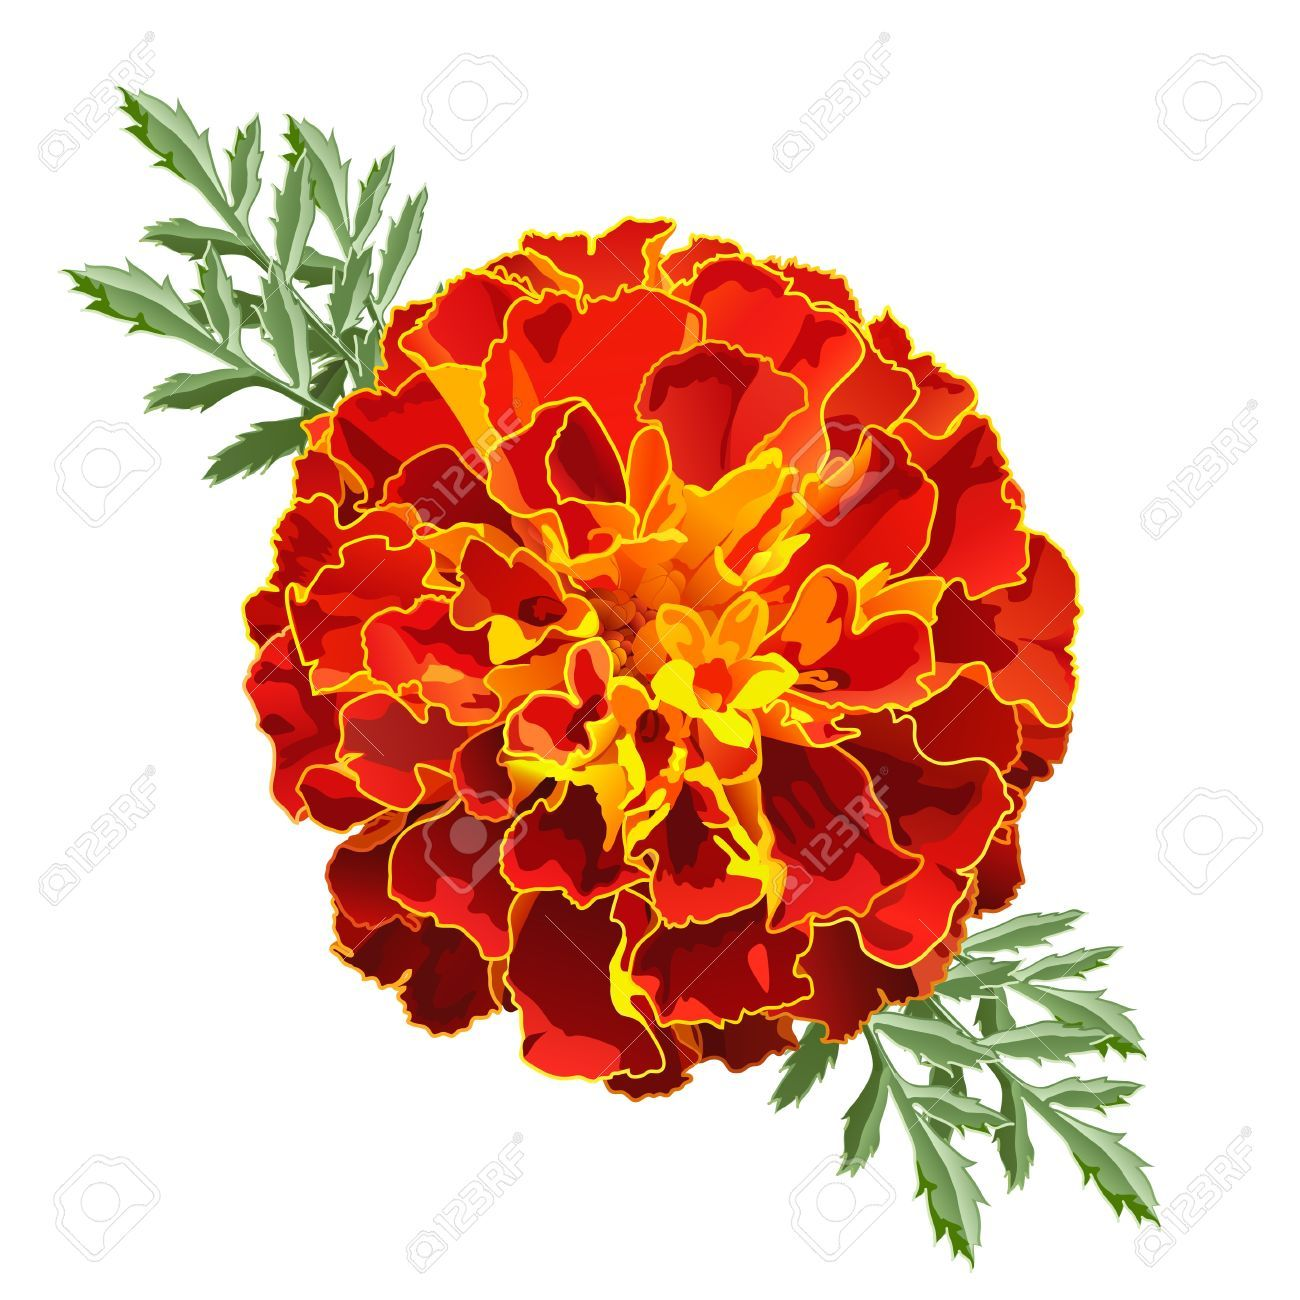 Red marigold flower tagetes patula isolated on white background red marigold flower tagetes patula isolated on white background stock photo picture and mightylinksfo